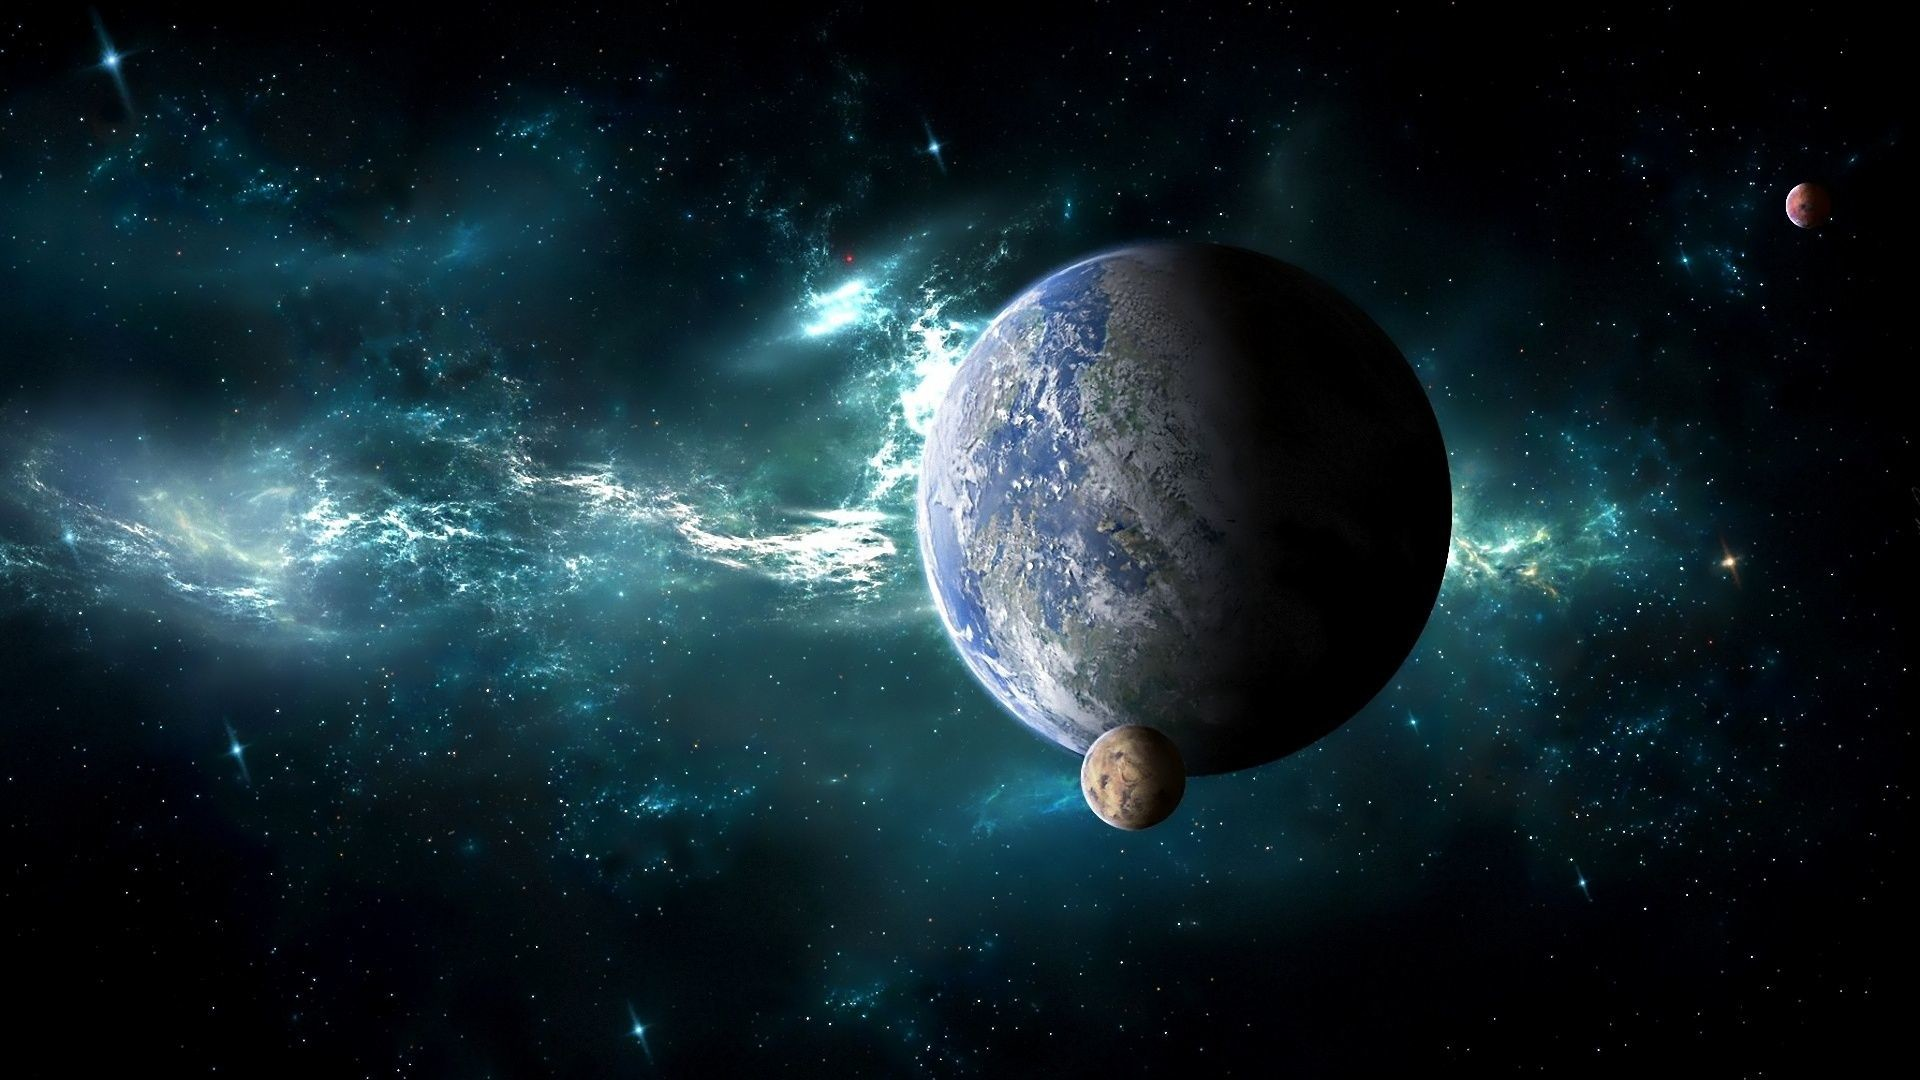 Earth from Space Wallpaper 1920×1080 Pictures Of Earth From Space Wallpapers  (43 Wallpapers